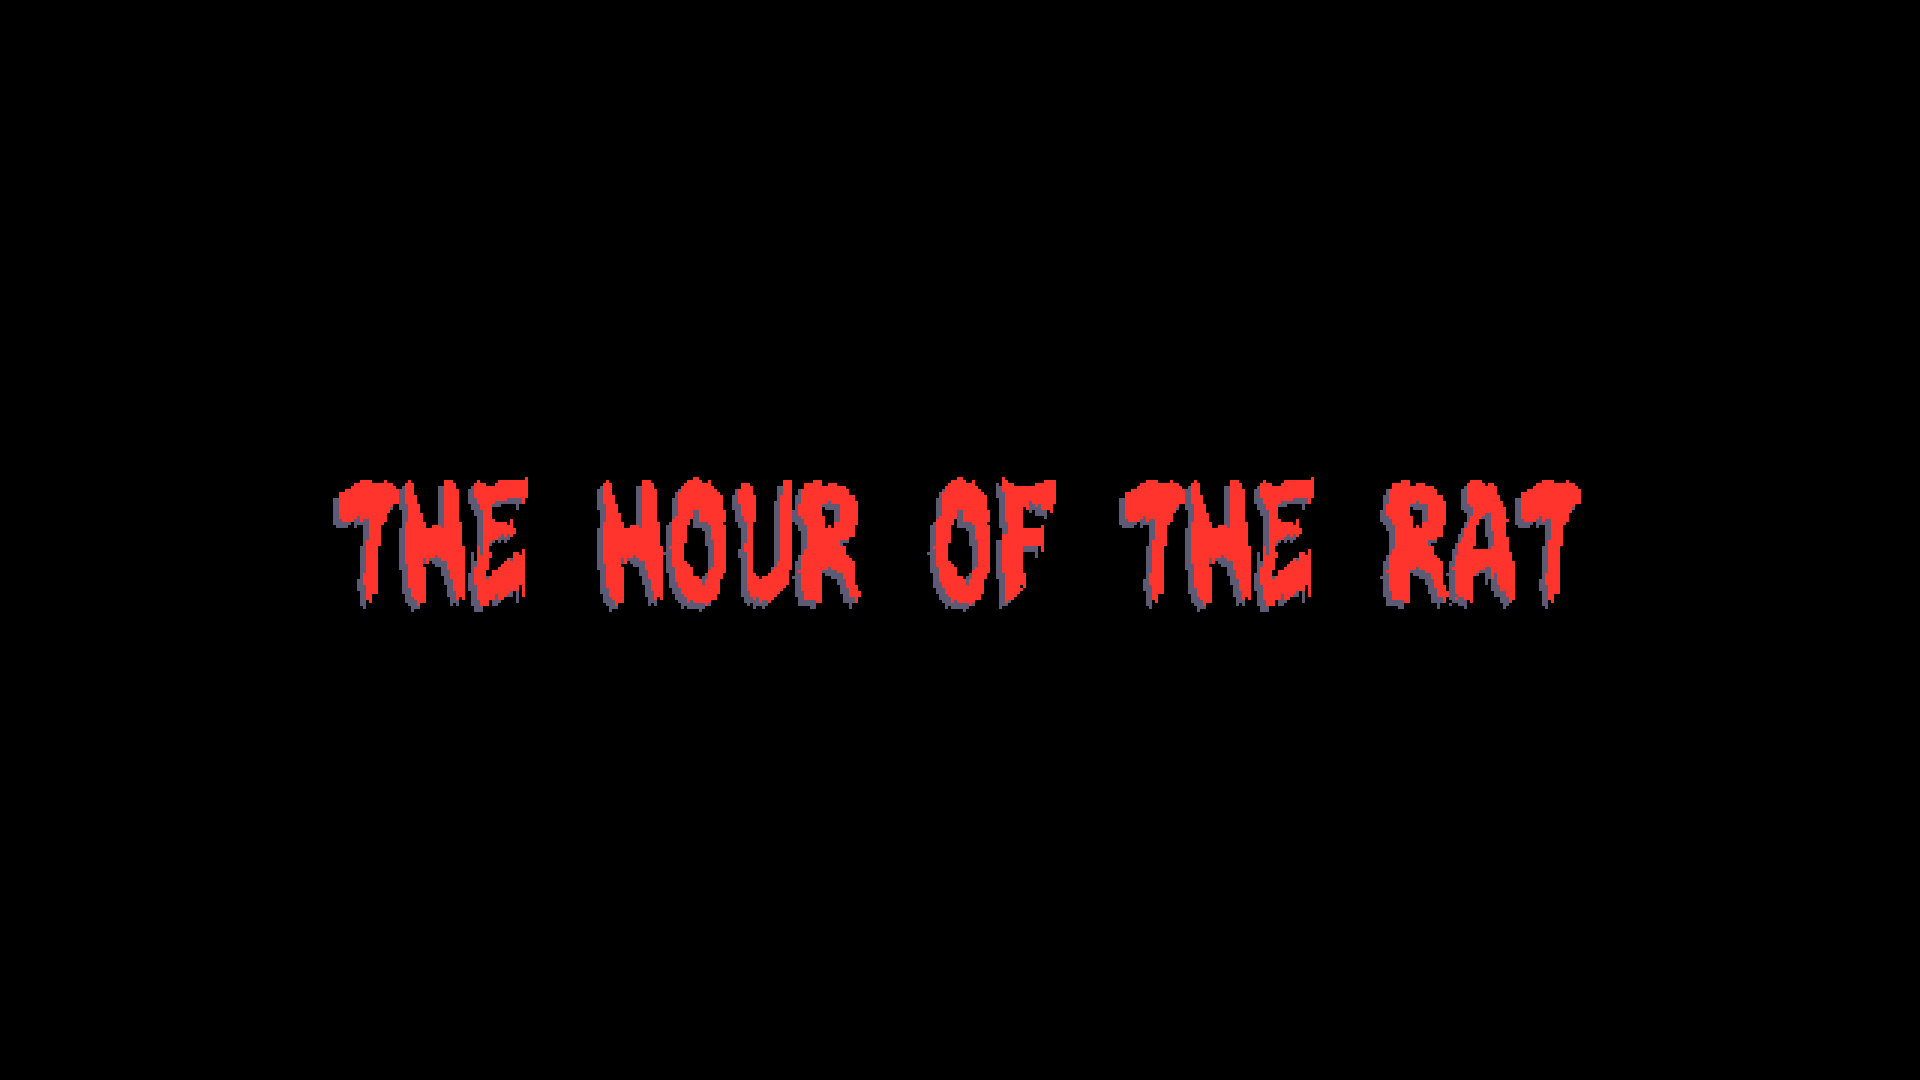 The Hour of the Rat